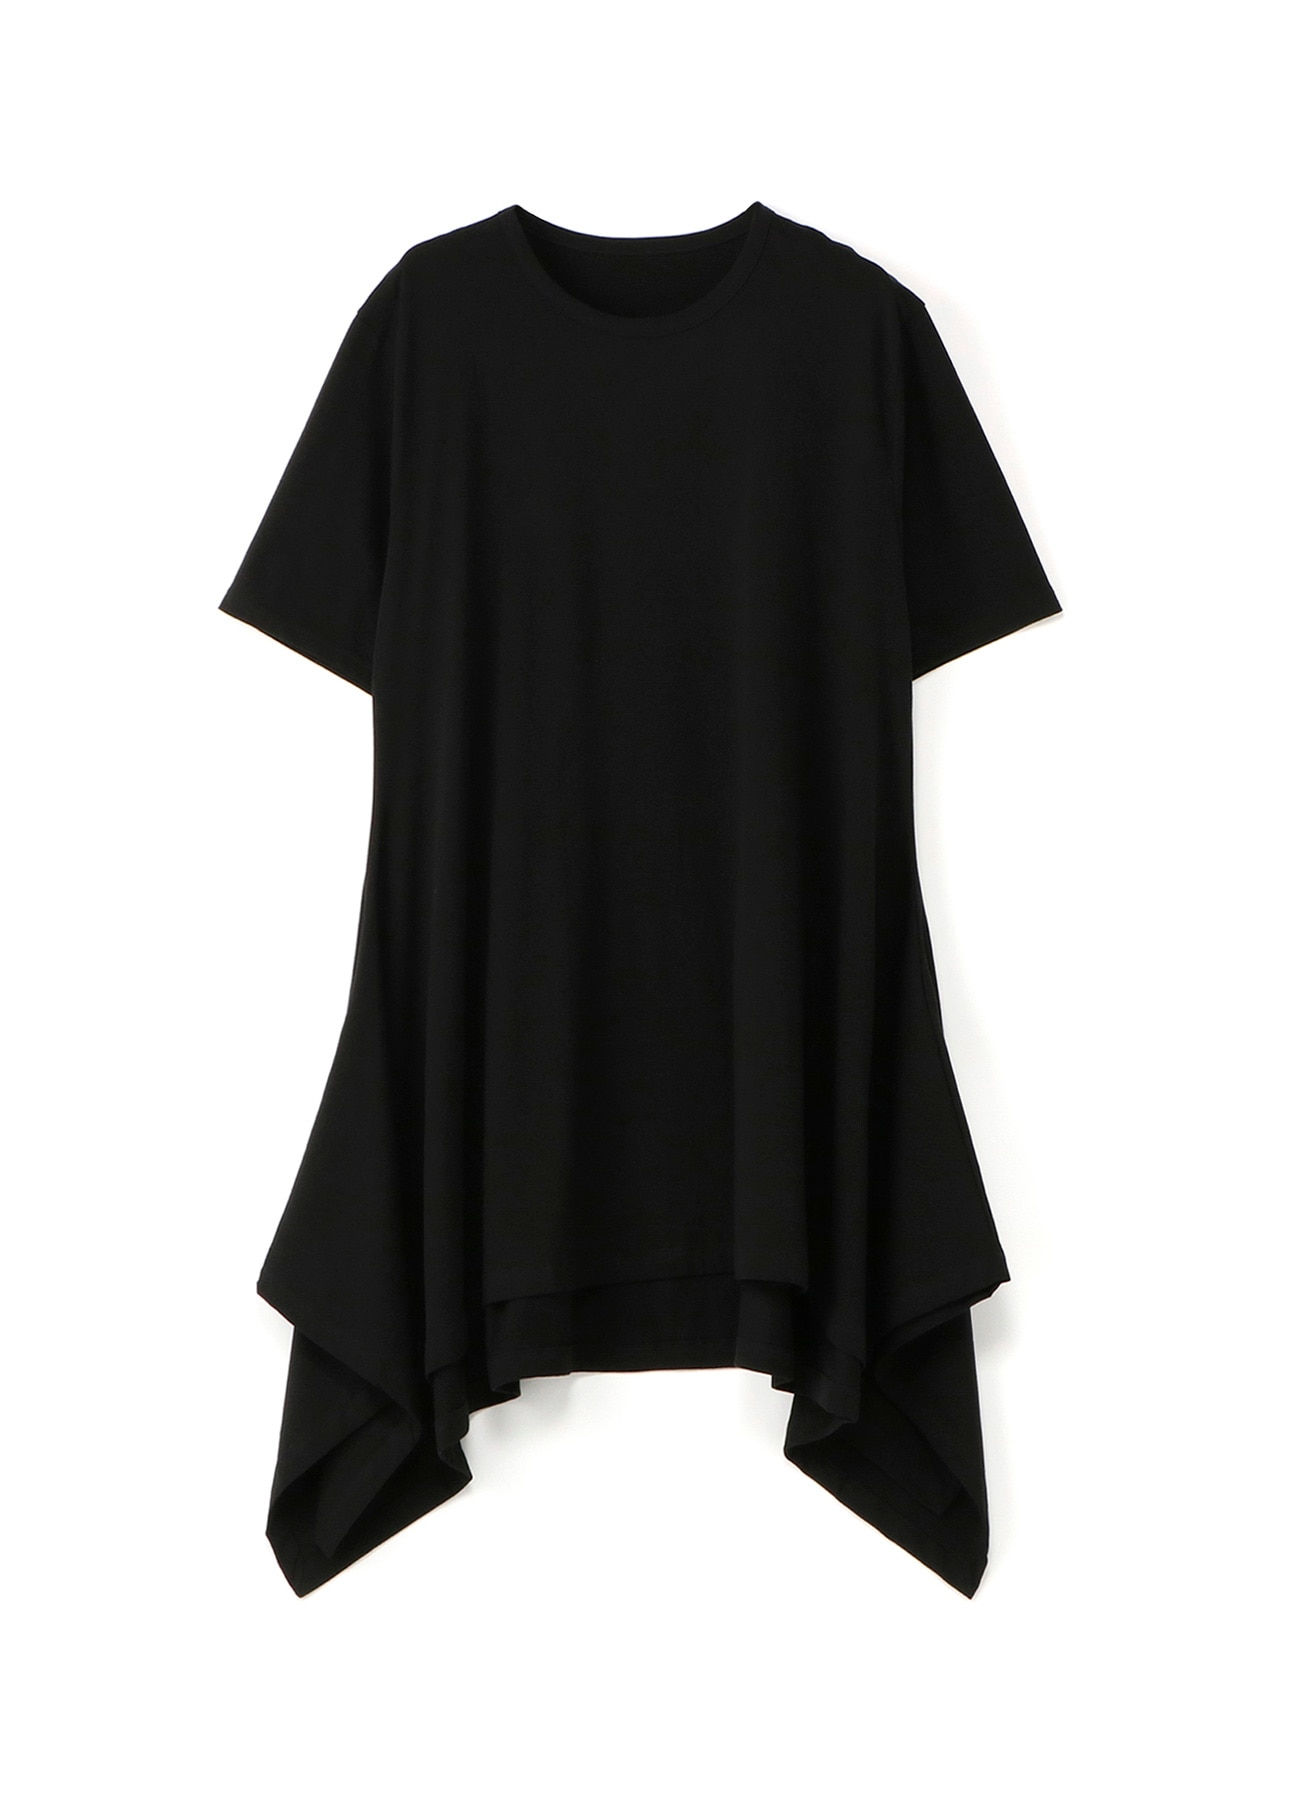 30 / cotton Jersey Side Drape T